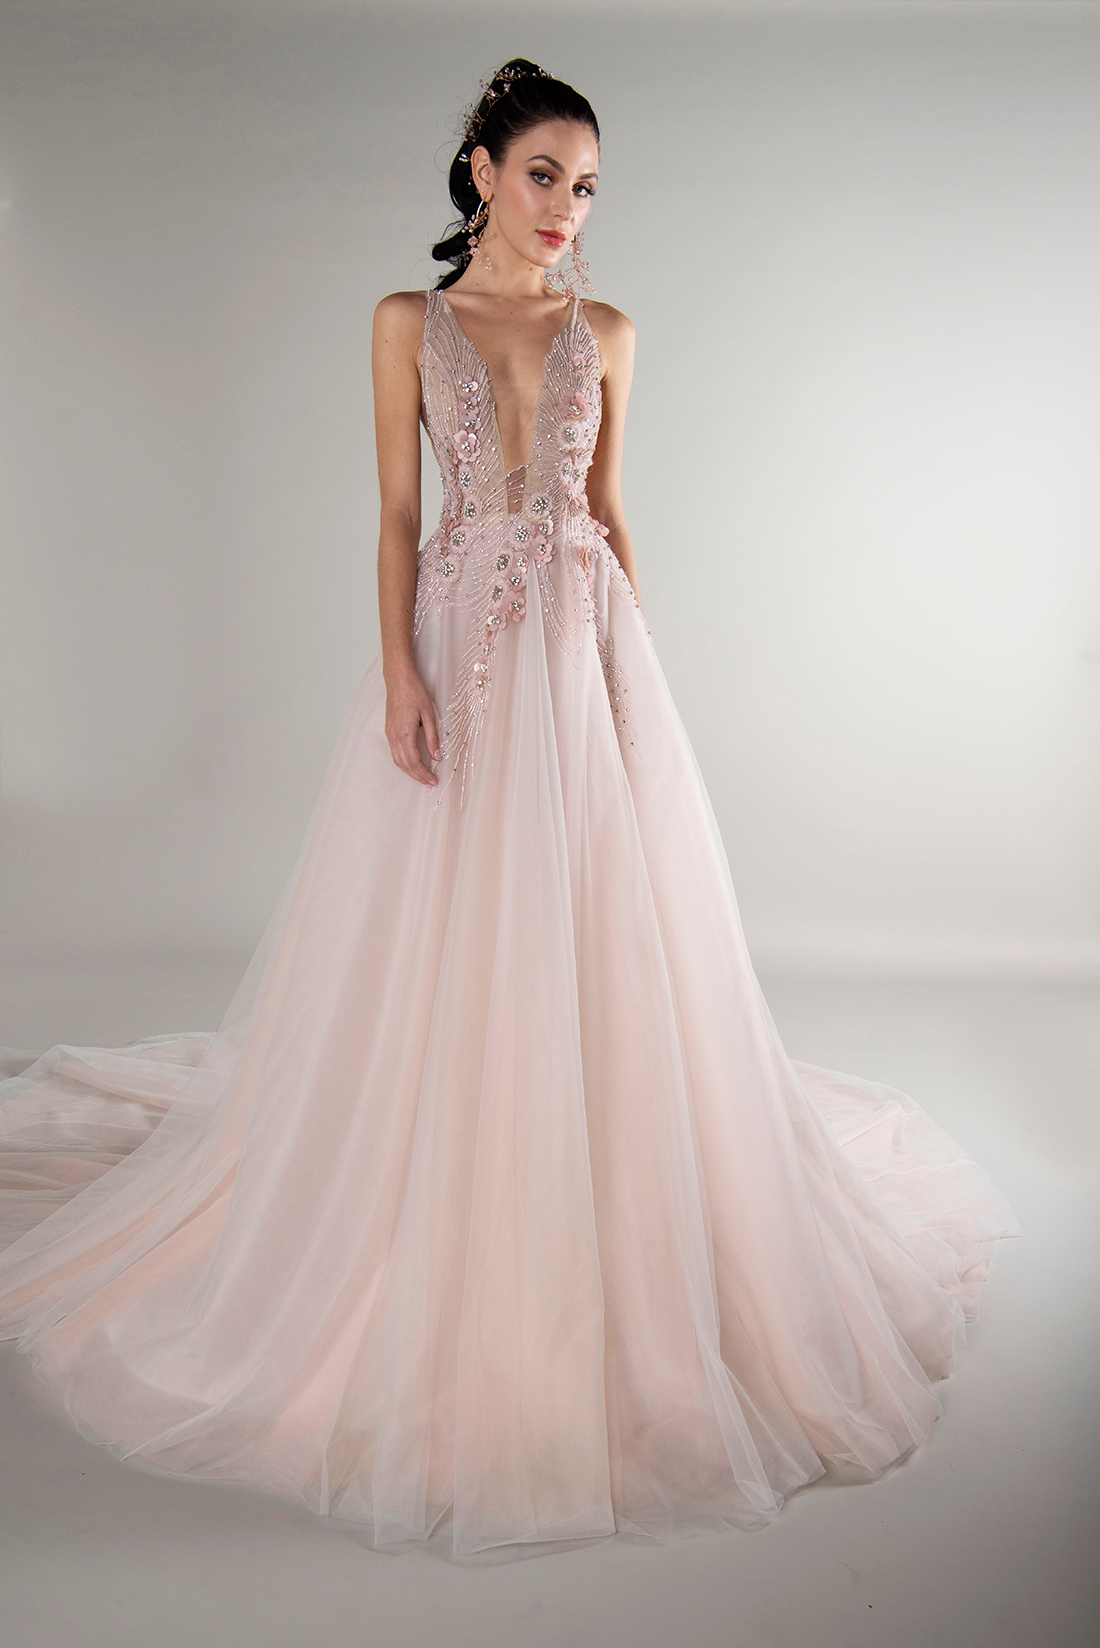 yumi katsura fall 2019 ball gown plunging neckline sleeveless floral beaded applique pink